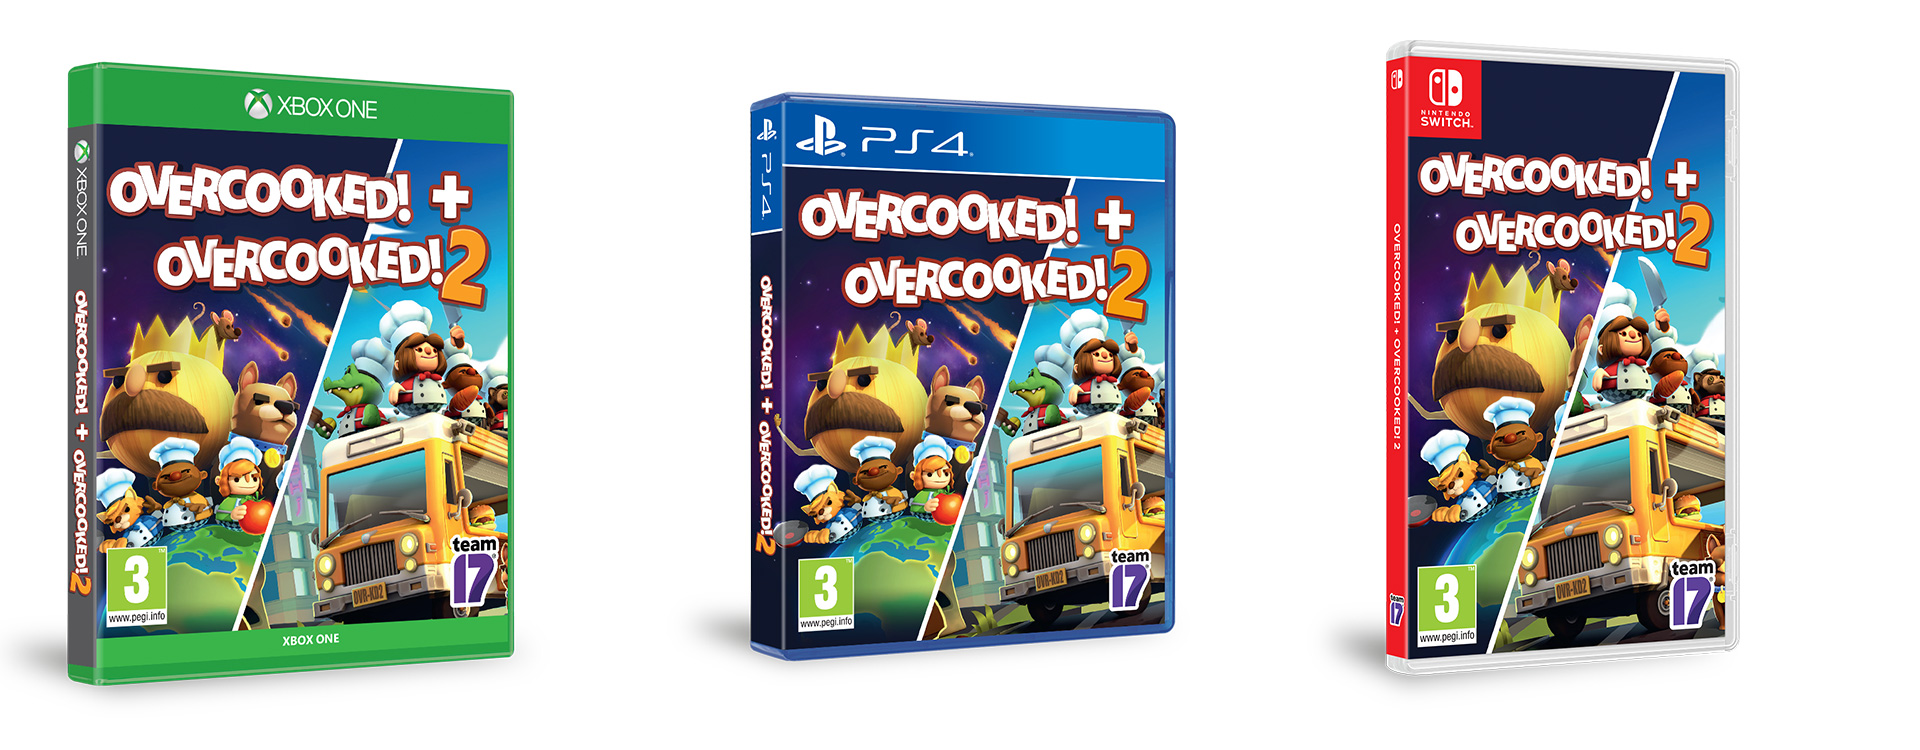 Overcooked_reprographics_artwork_packshot